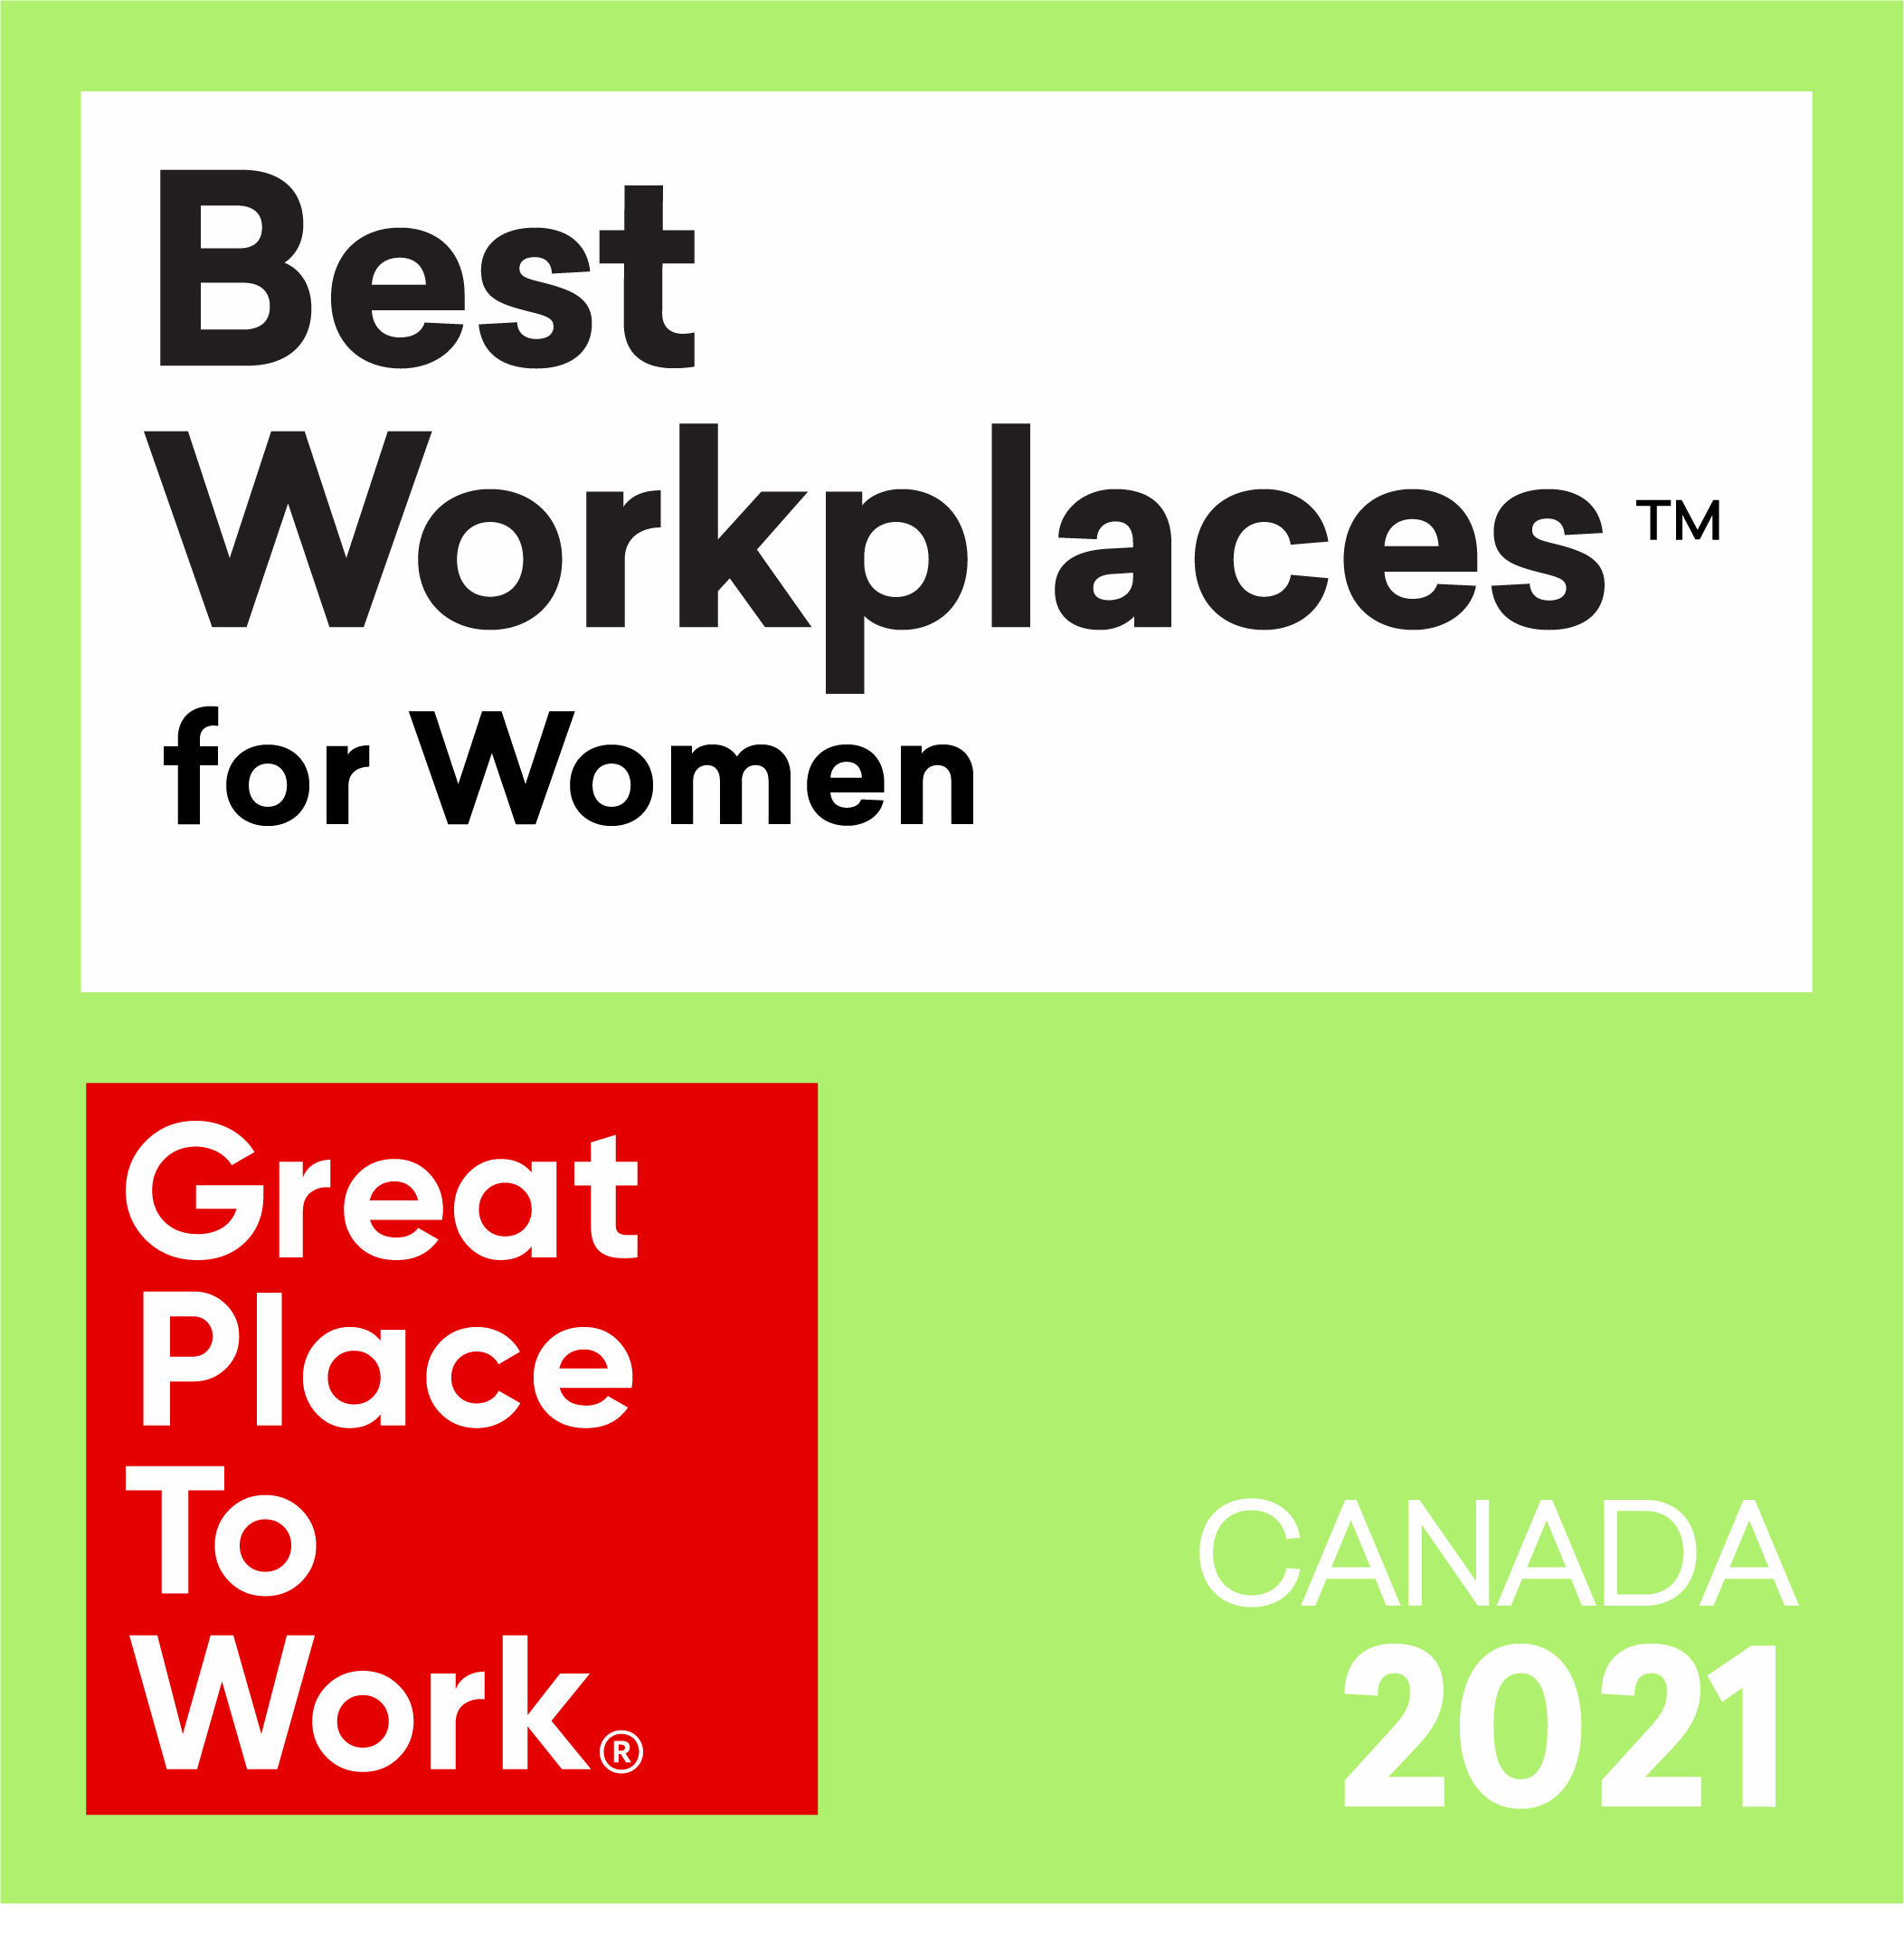 Best workplaces for women 2021 logo